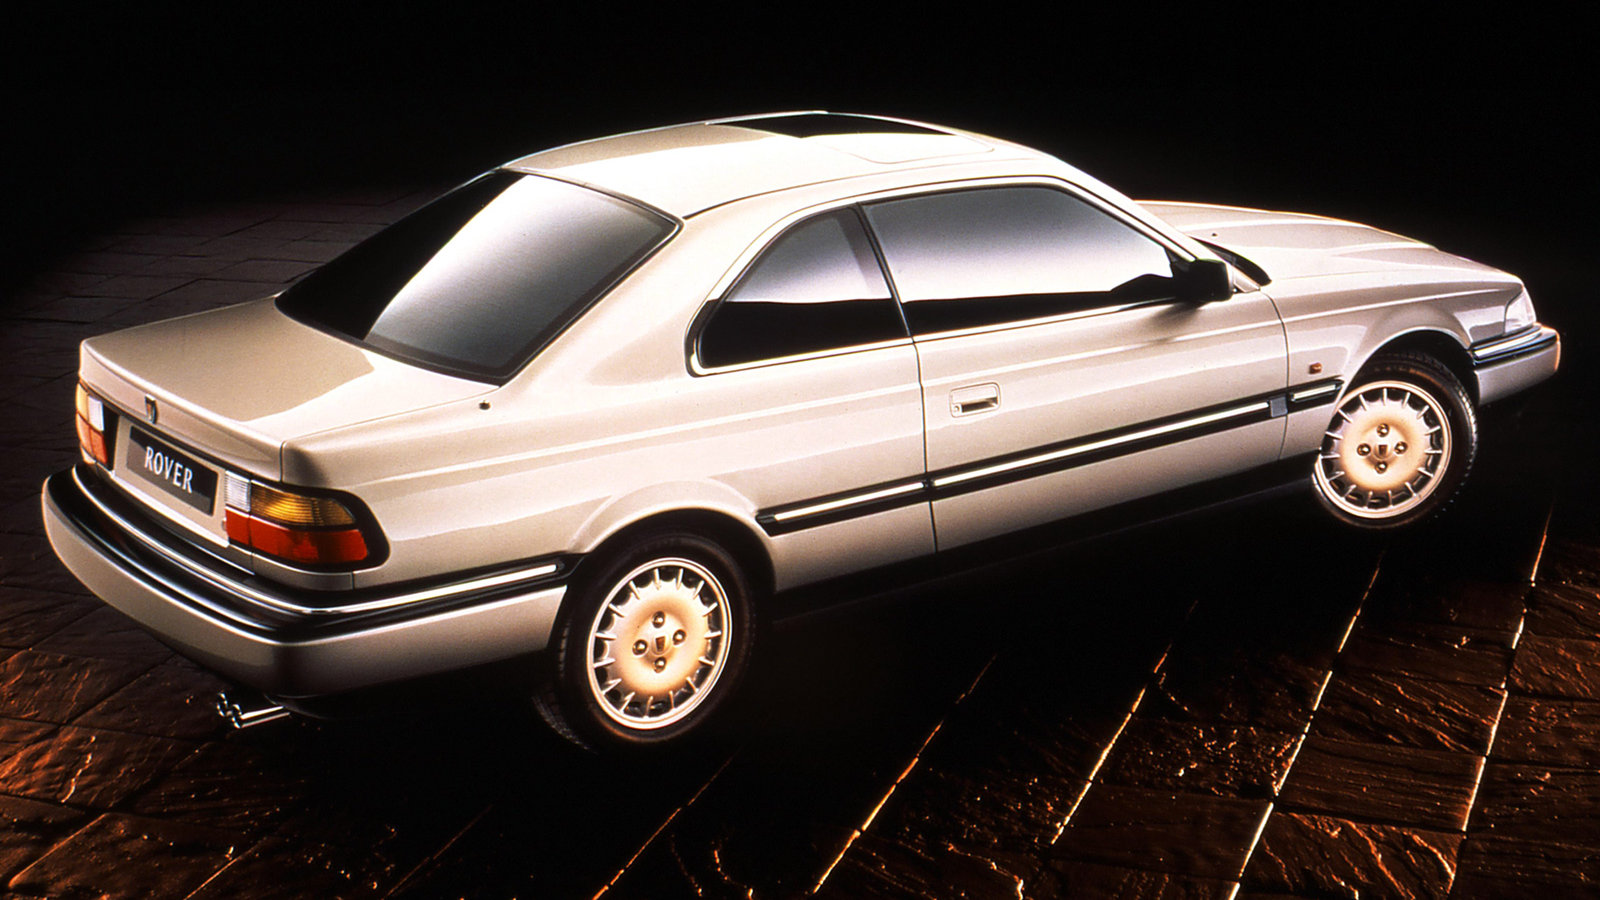 Rover 827 Coupe 4